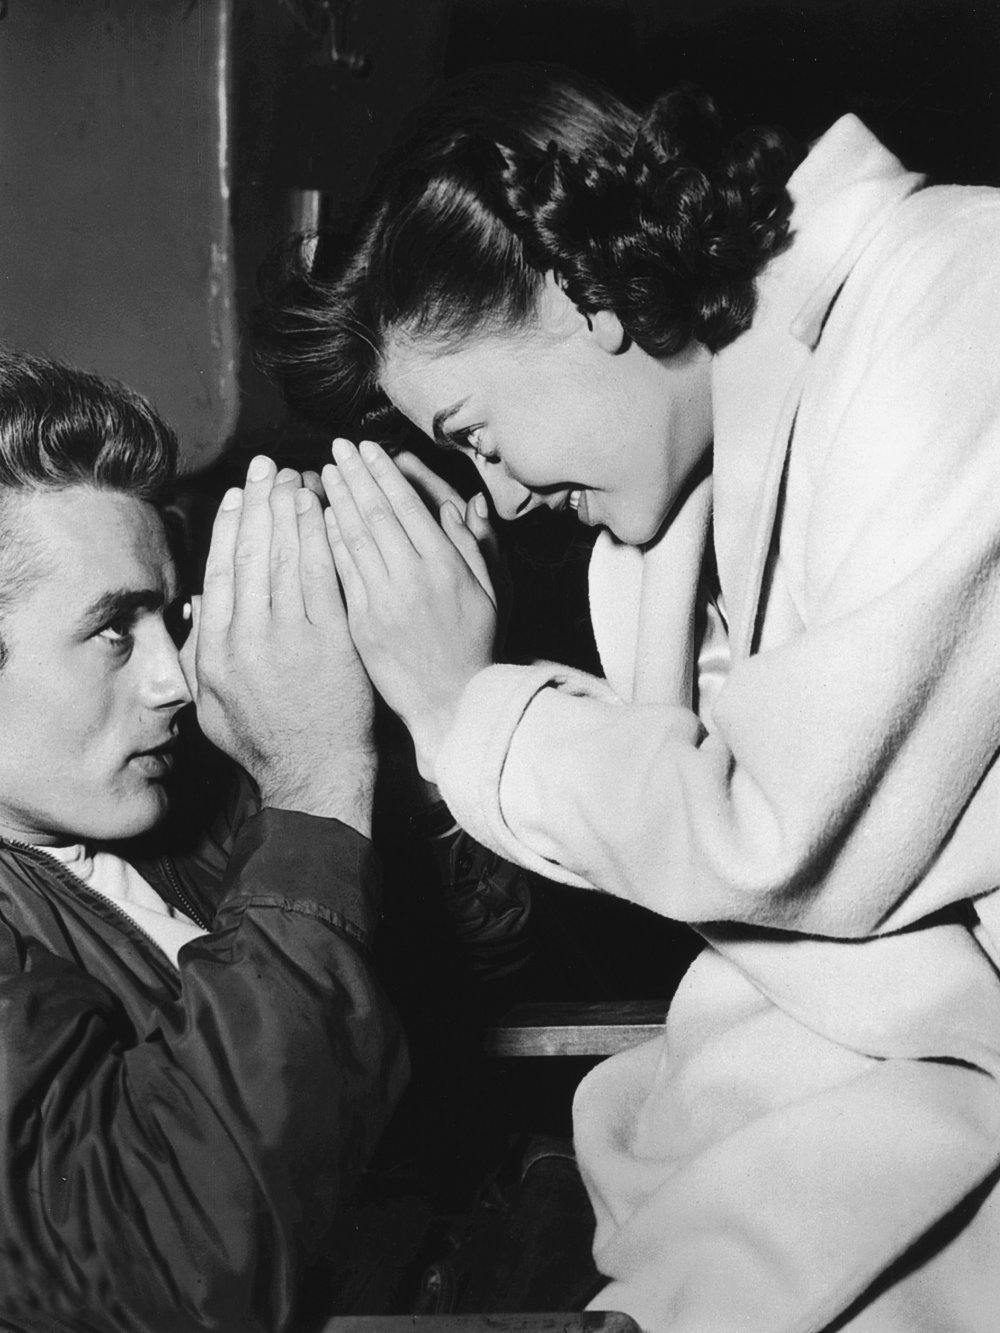 The two tragic stars of Rebel without a Cause – Dean and Natalie Wood – share a moment between takes. Dean died in a car crash in 1955, one month before the film was released; he was 24. Wood drowned in 1981, aged 43.